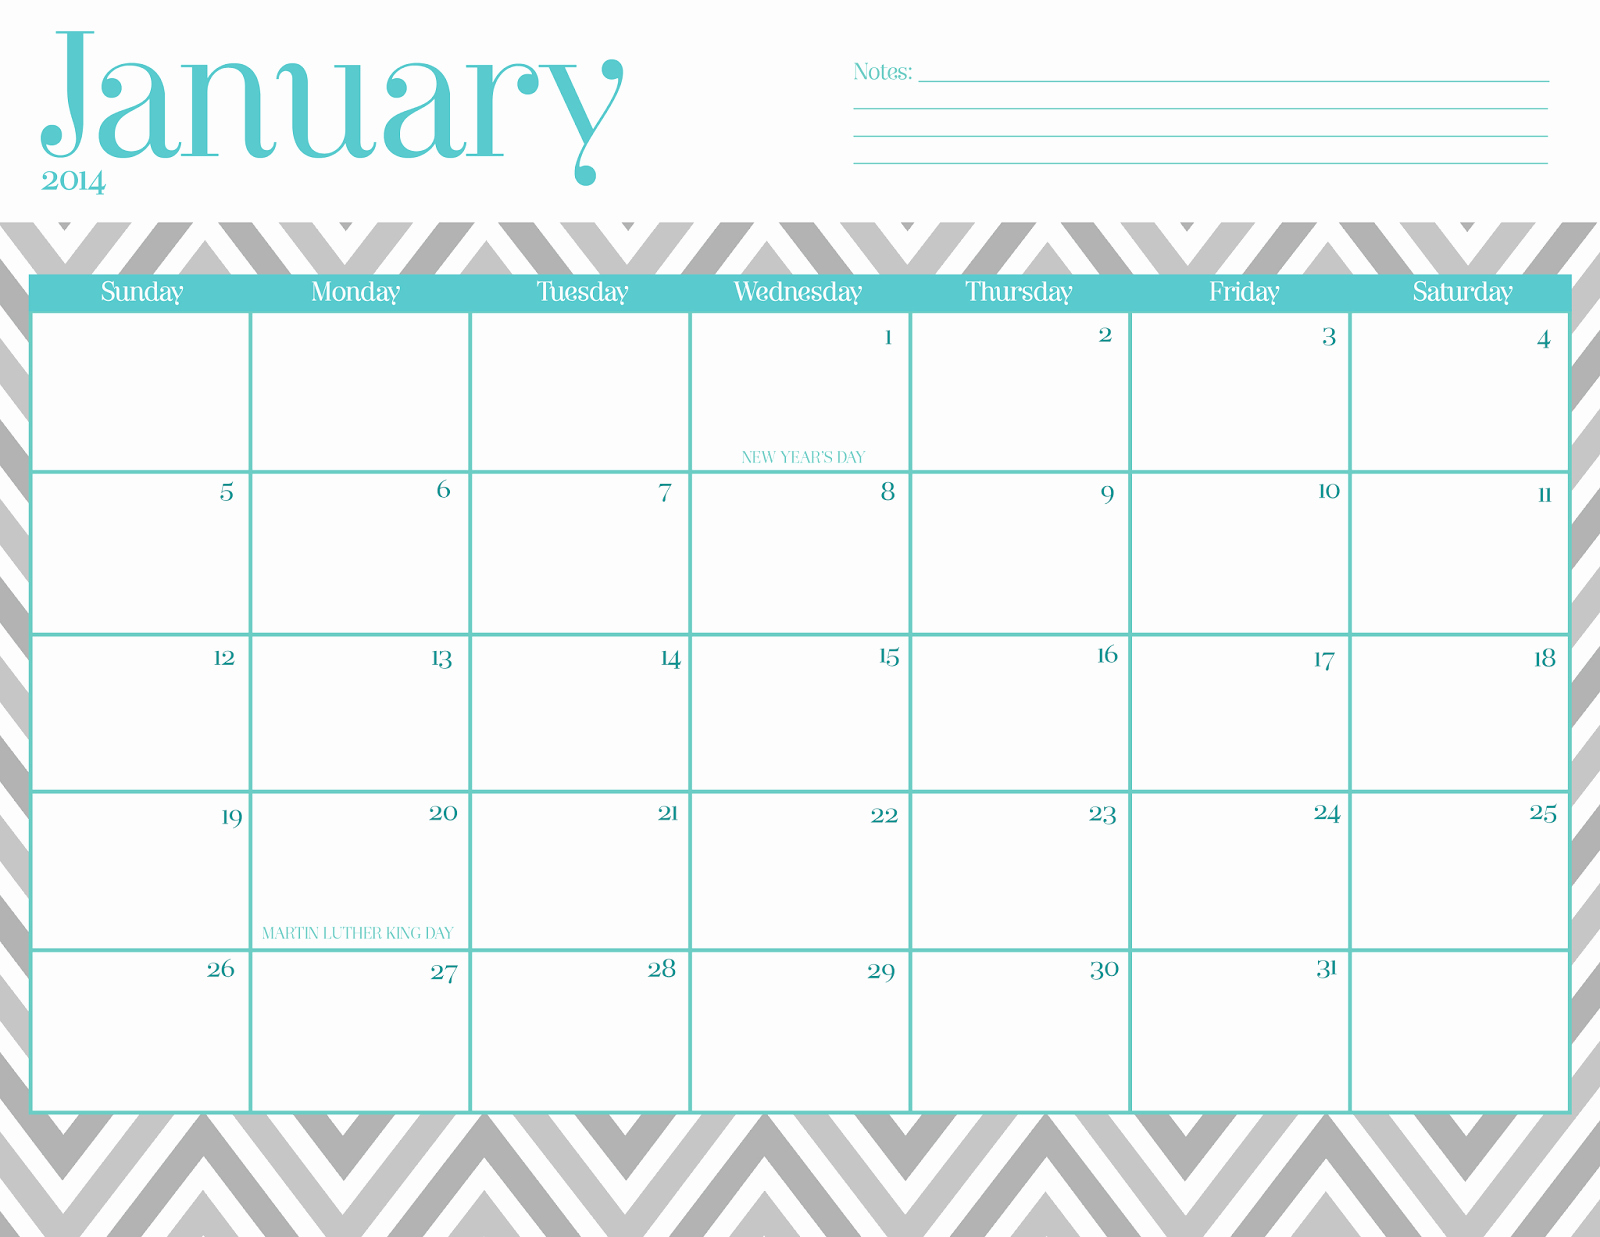 Month by Month Calendar Template Awesome 2016 Printable Cute Calendar by Month